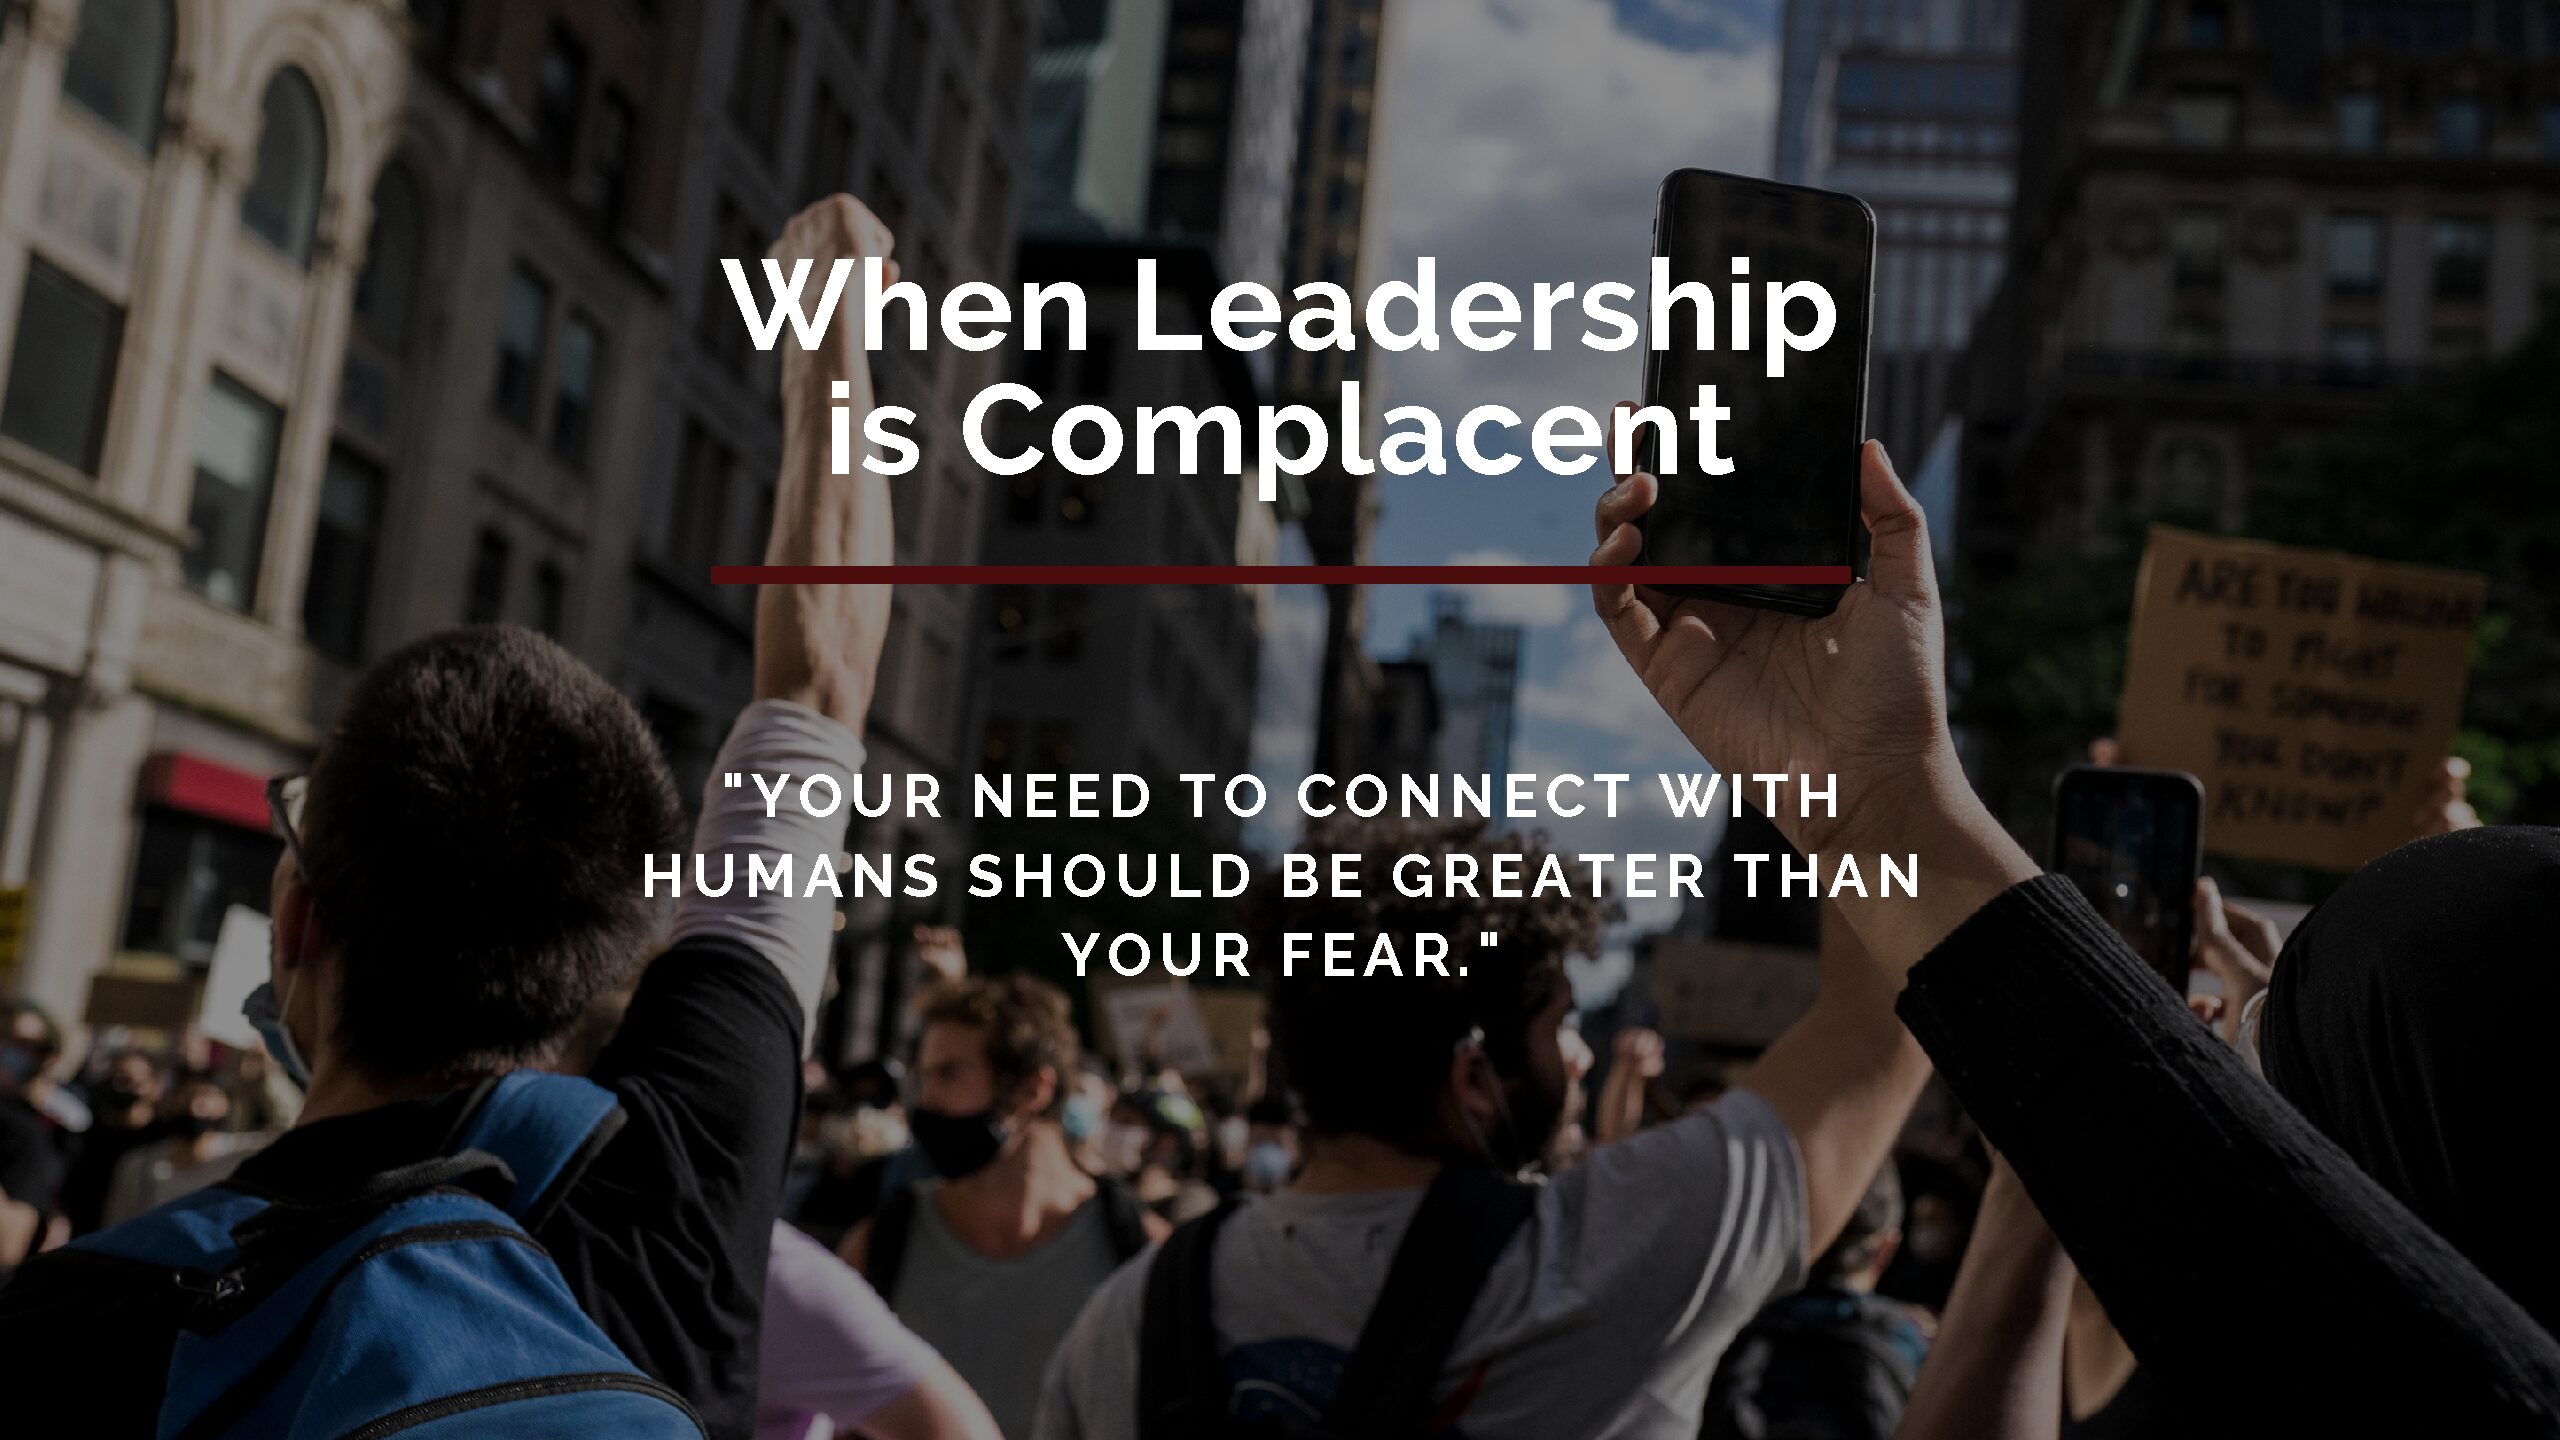 When Leadership is Complacent